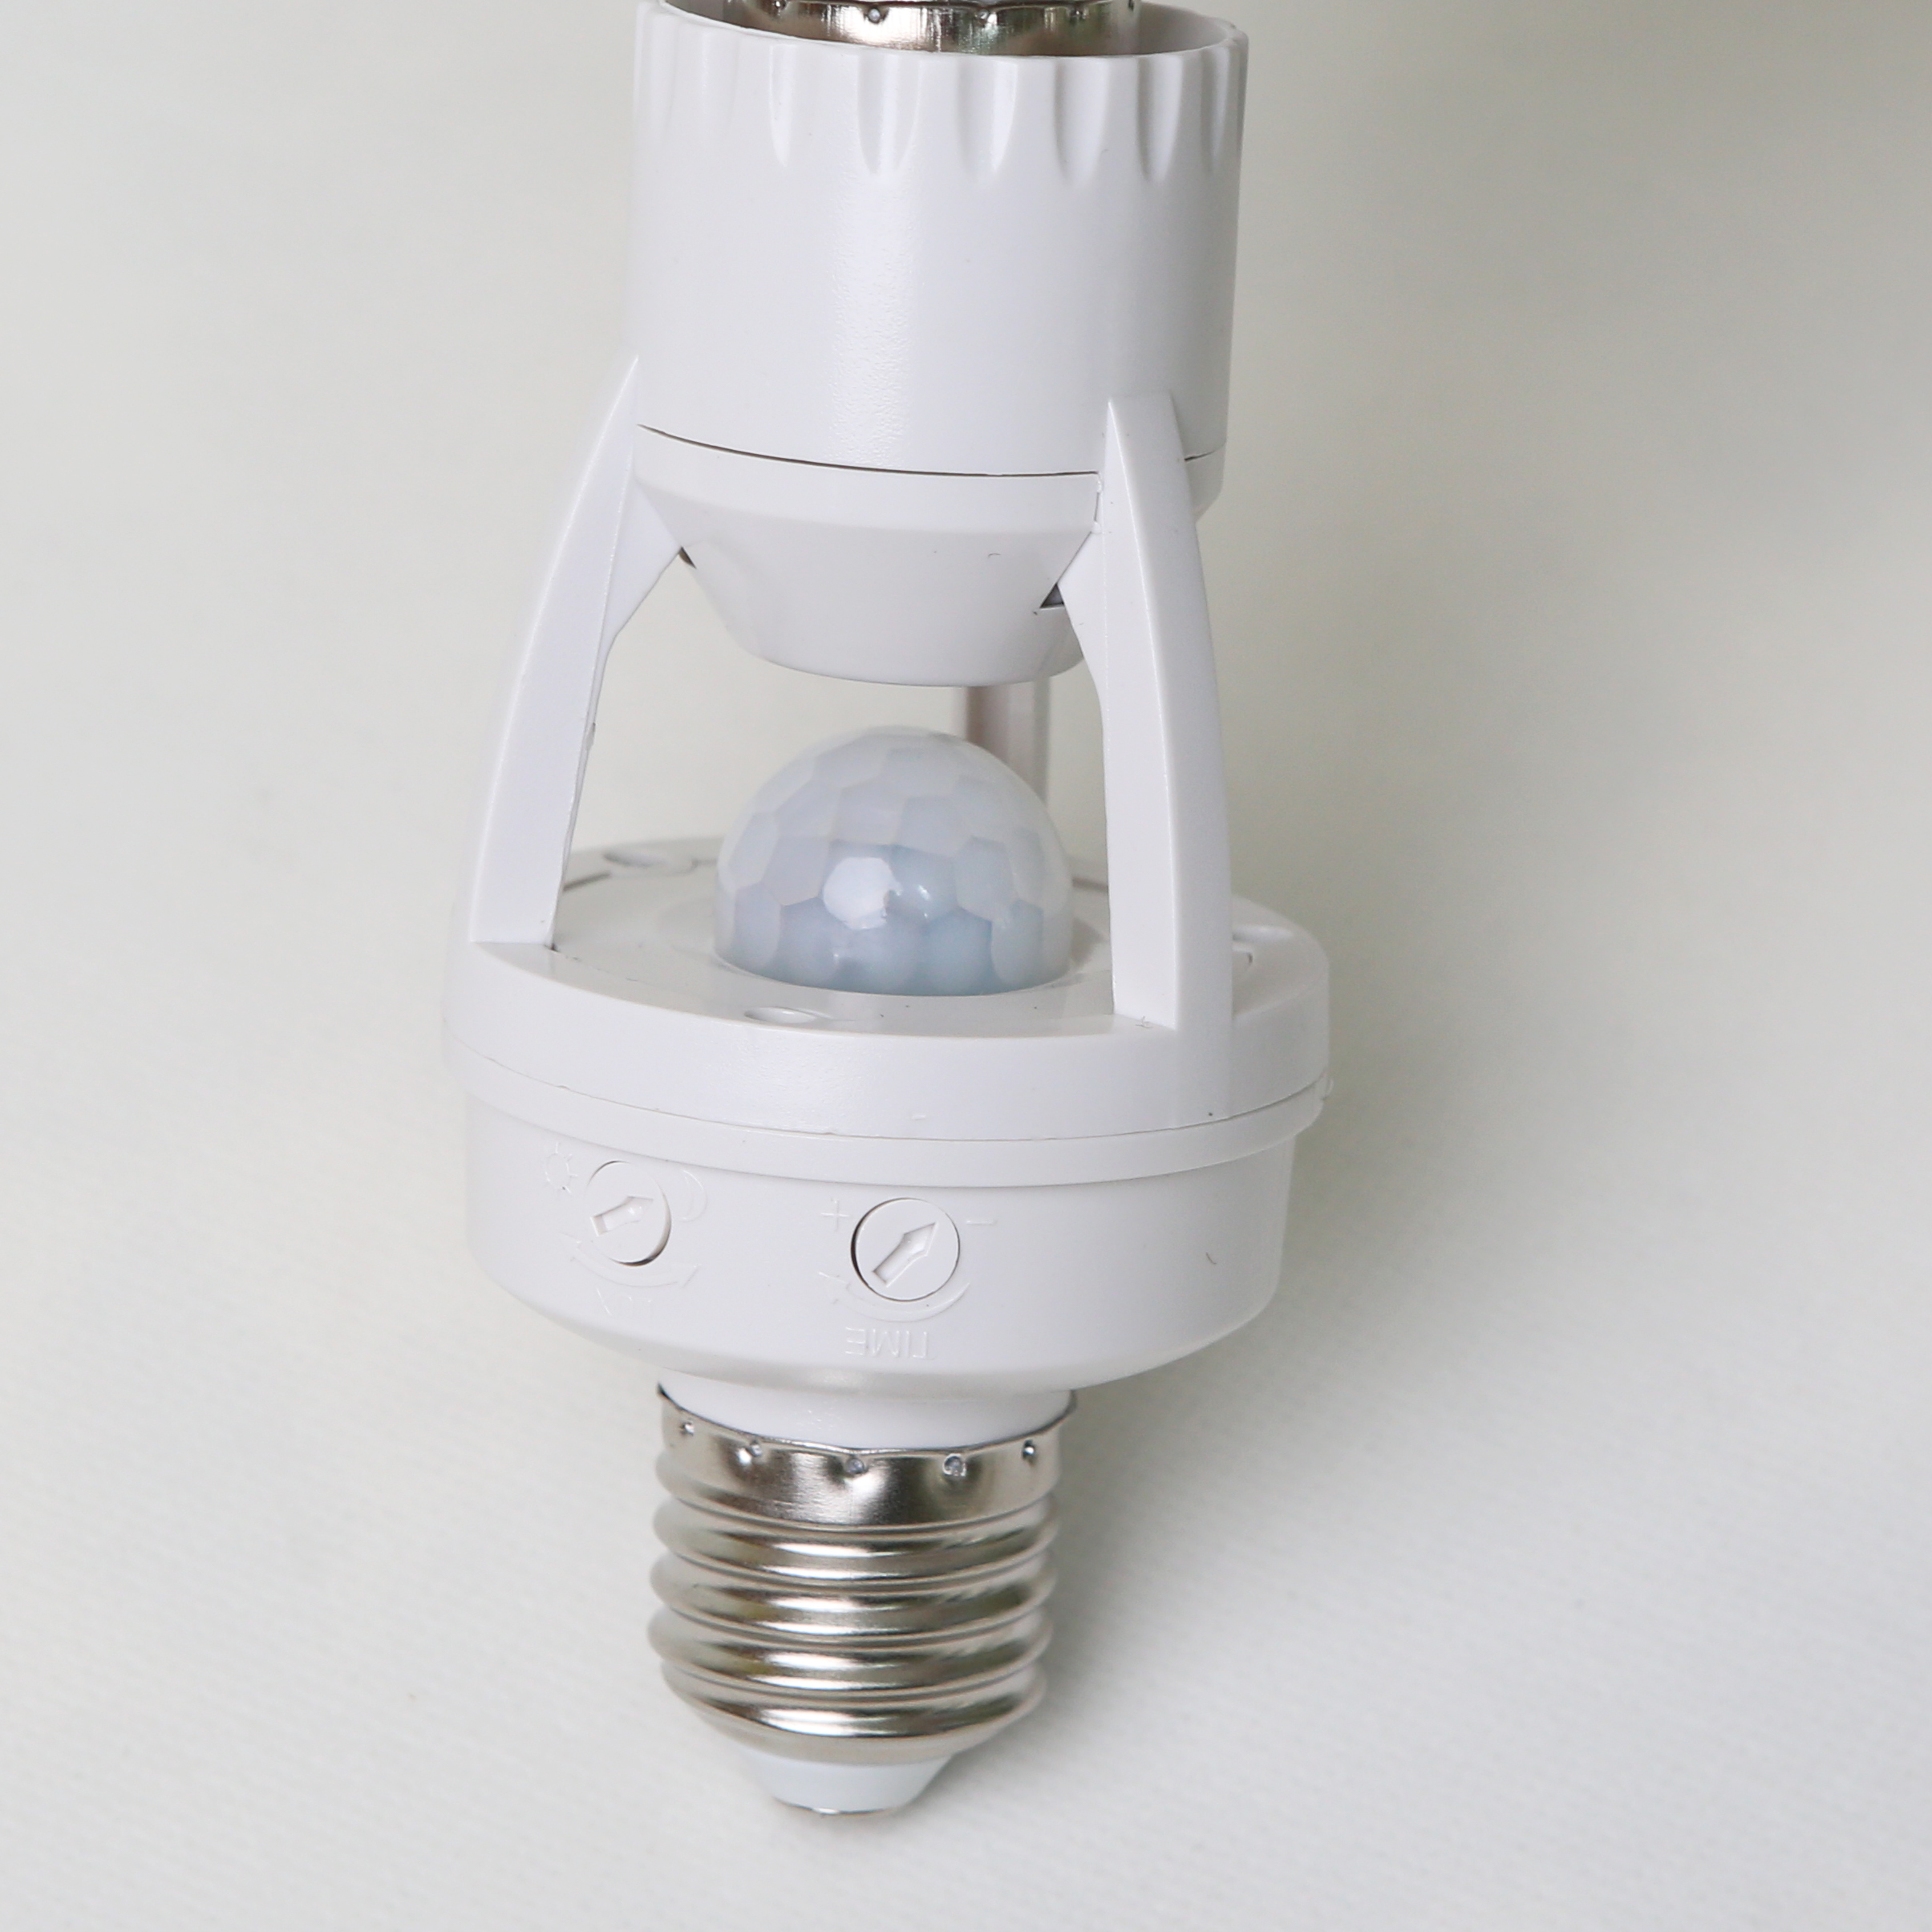 lamp base <strong>adapter</strong> <strong>E27</strong> to <strong>E27</strong> with PIR motion sensor